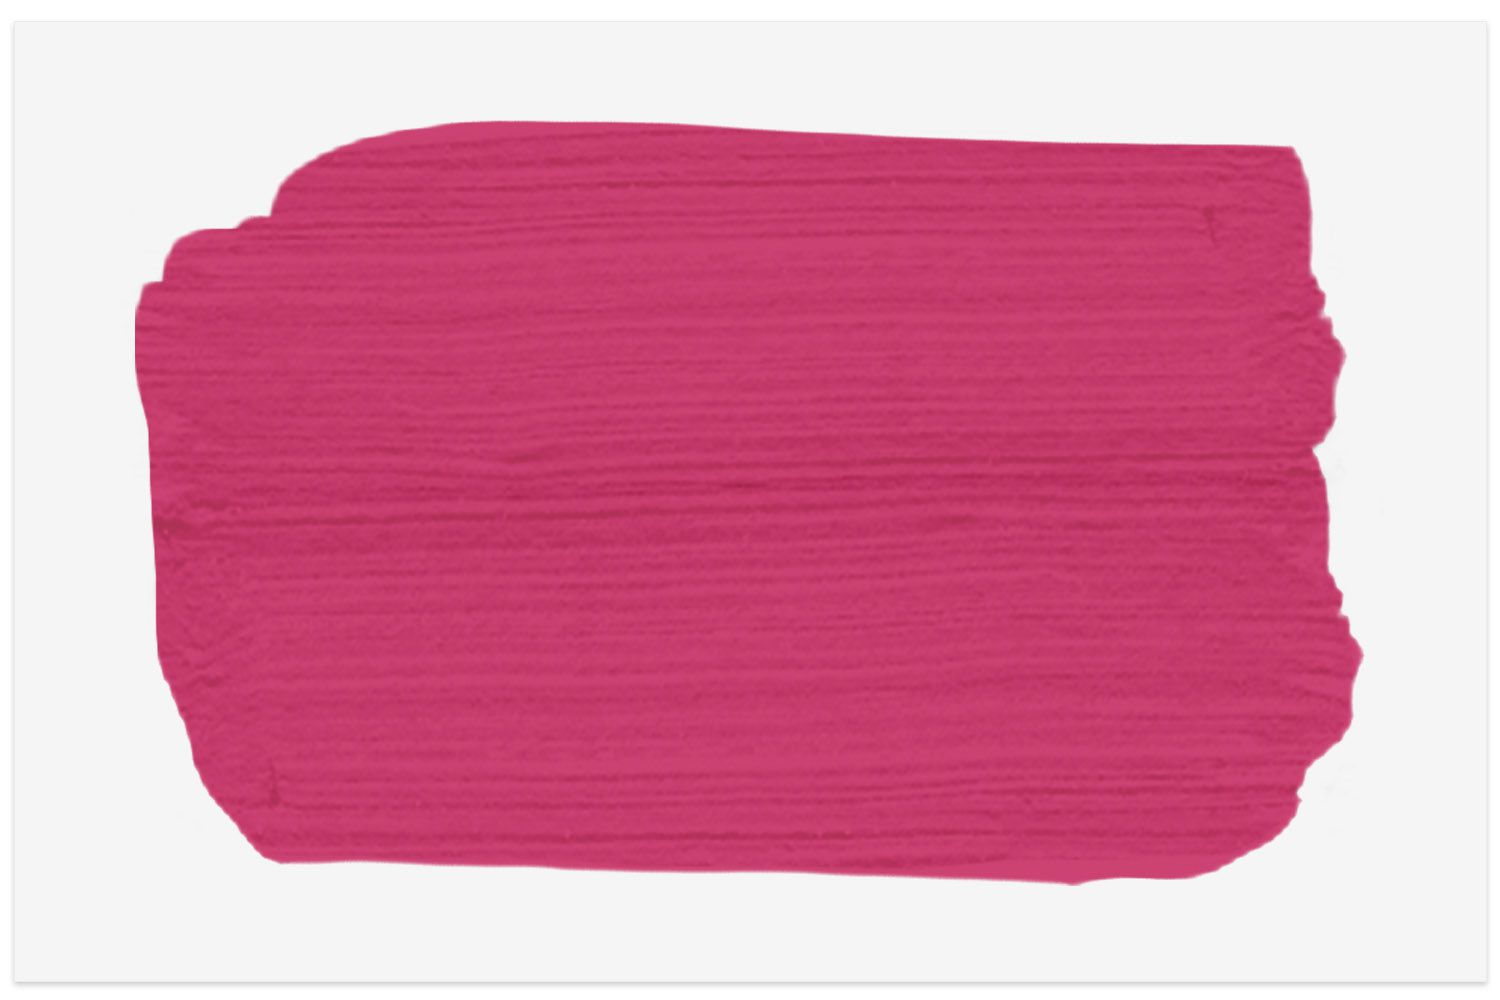 Peony paint swatch from Benjamin Moore